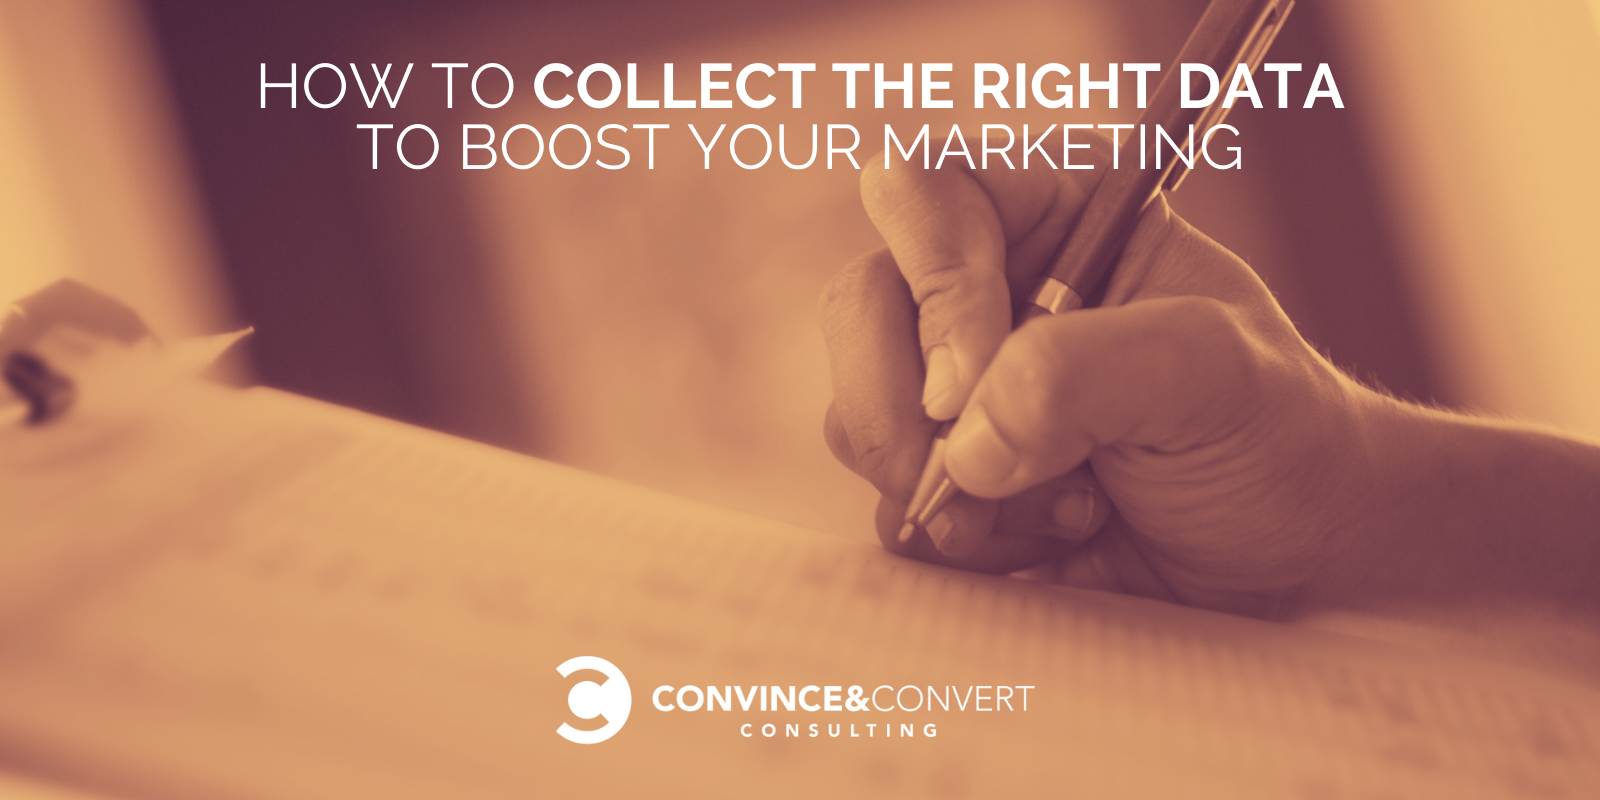 Receive the Proper Files to Boost Your Marketing – Convince & Convert